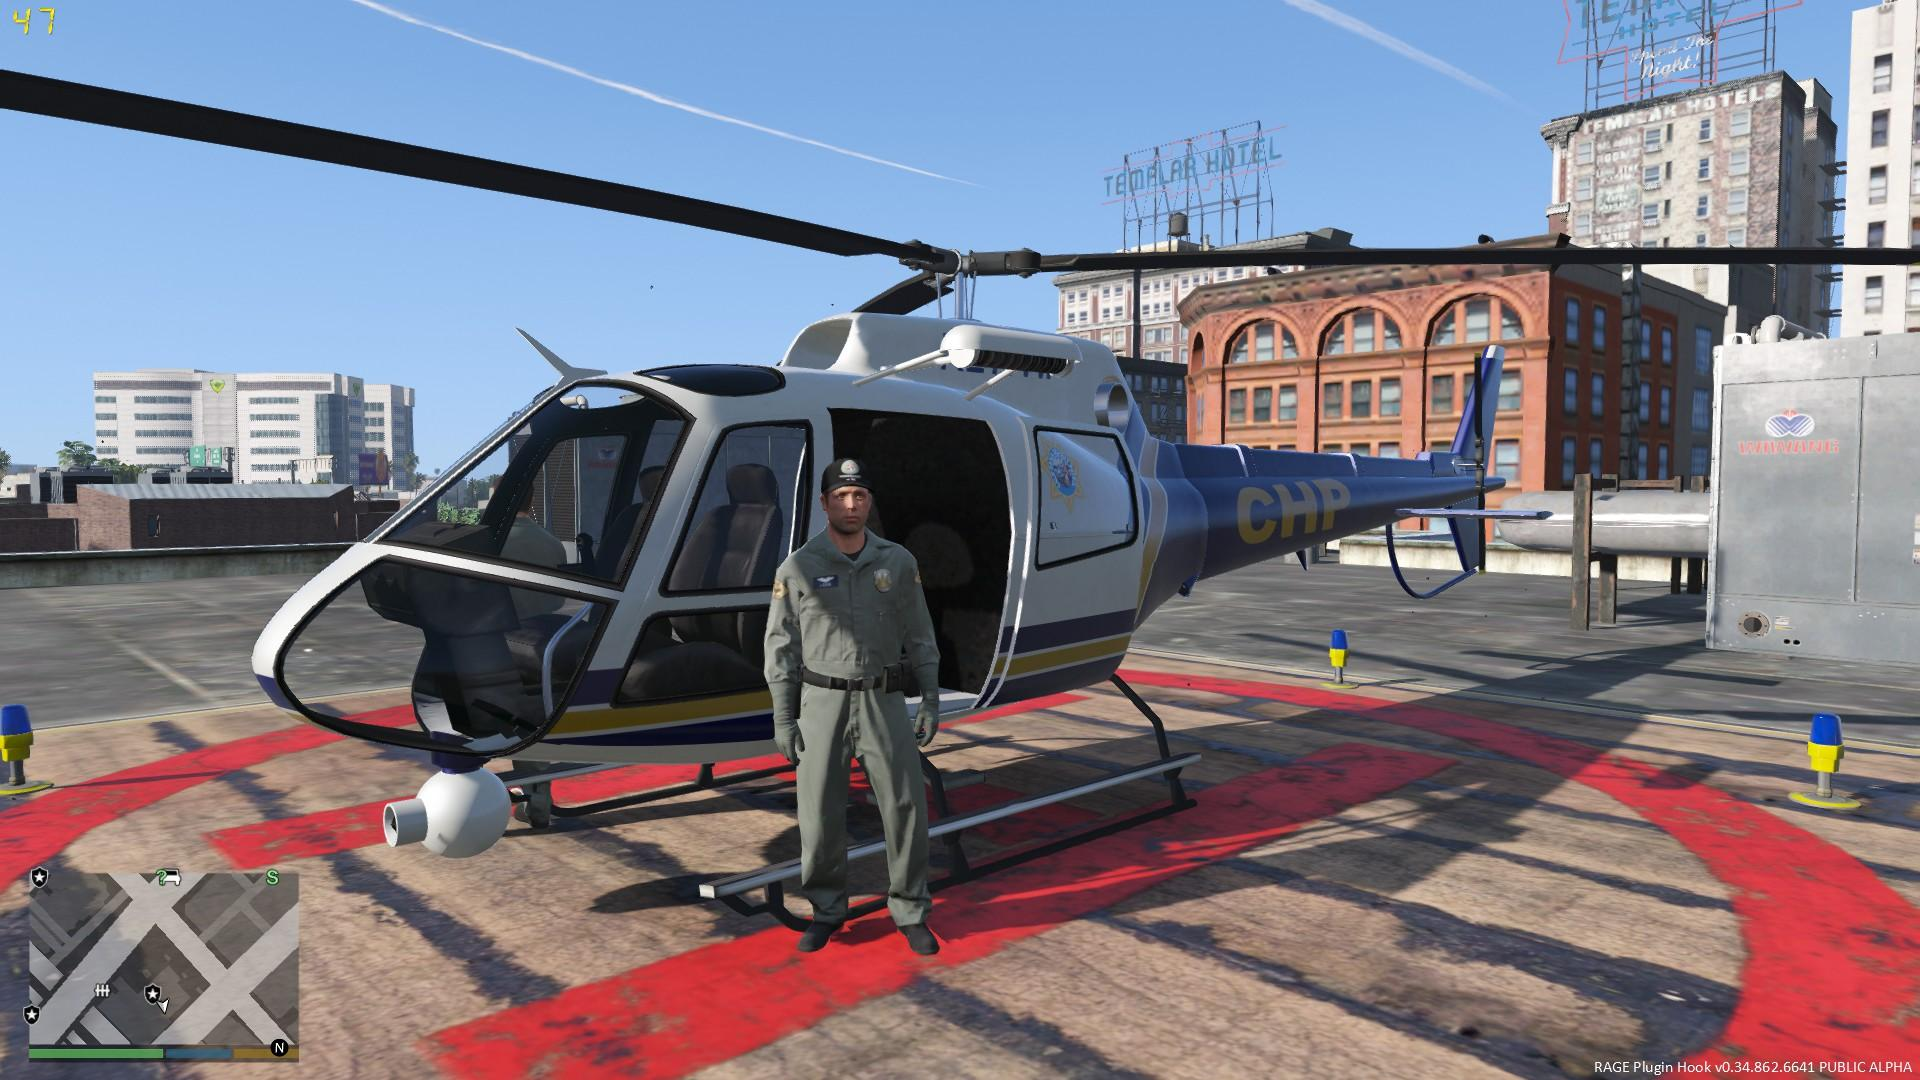 Elicottero Gta 5 : California highway patrol helicopter chp gta mods